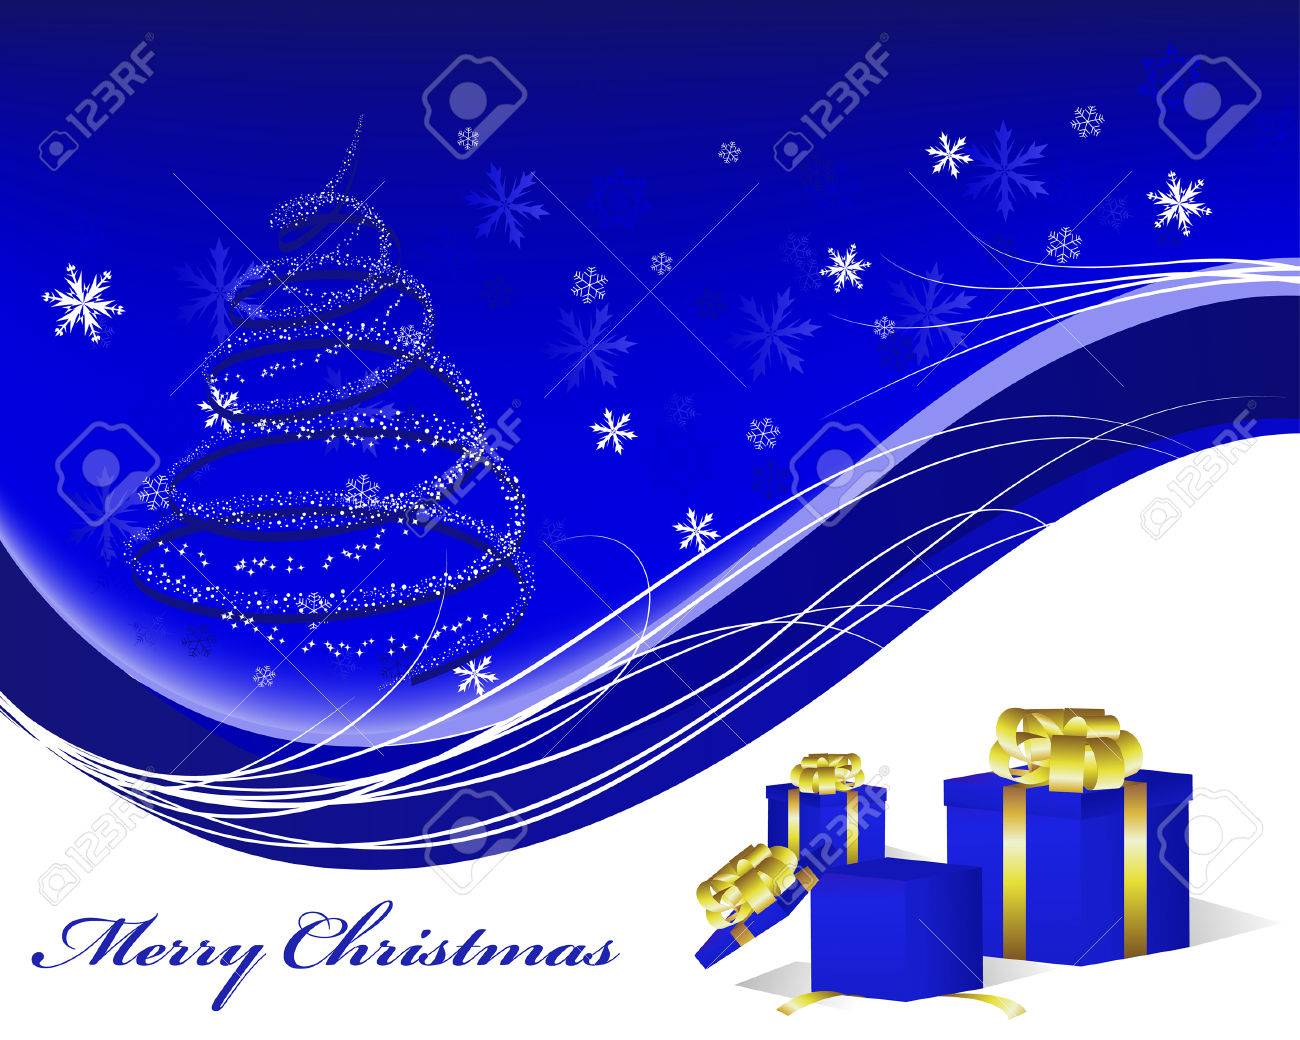 Beautiful vector christmas new year background for design use - Beautiful Vector Christmas New Year Background For Design Use Stock Vector 6071210